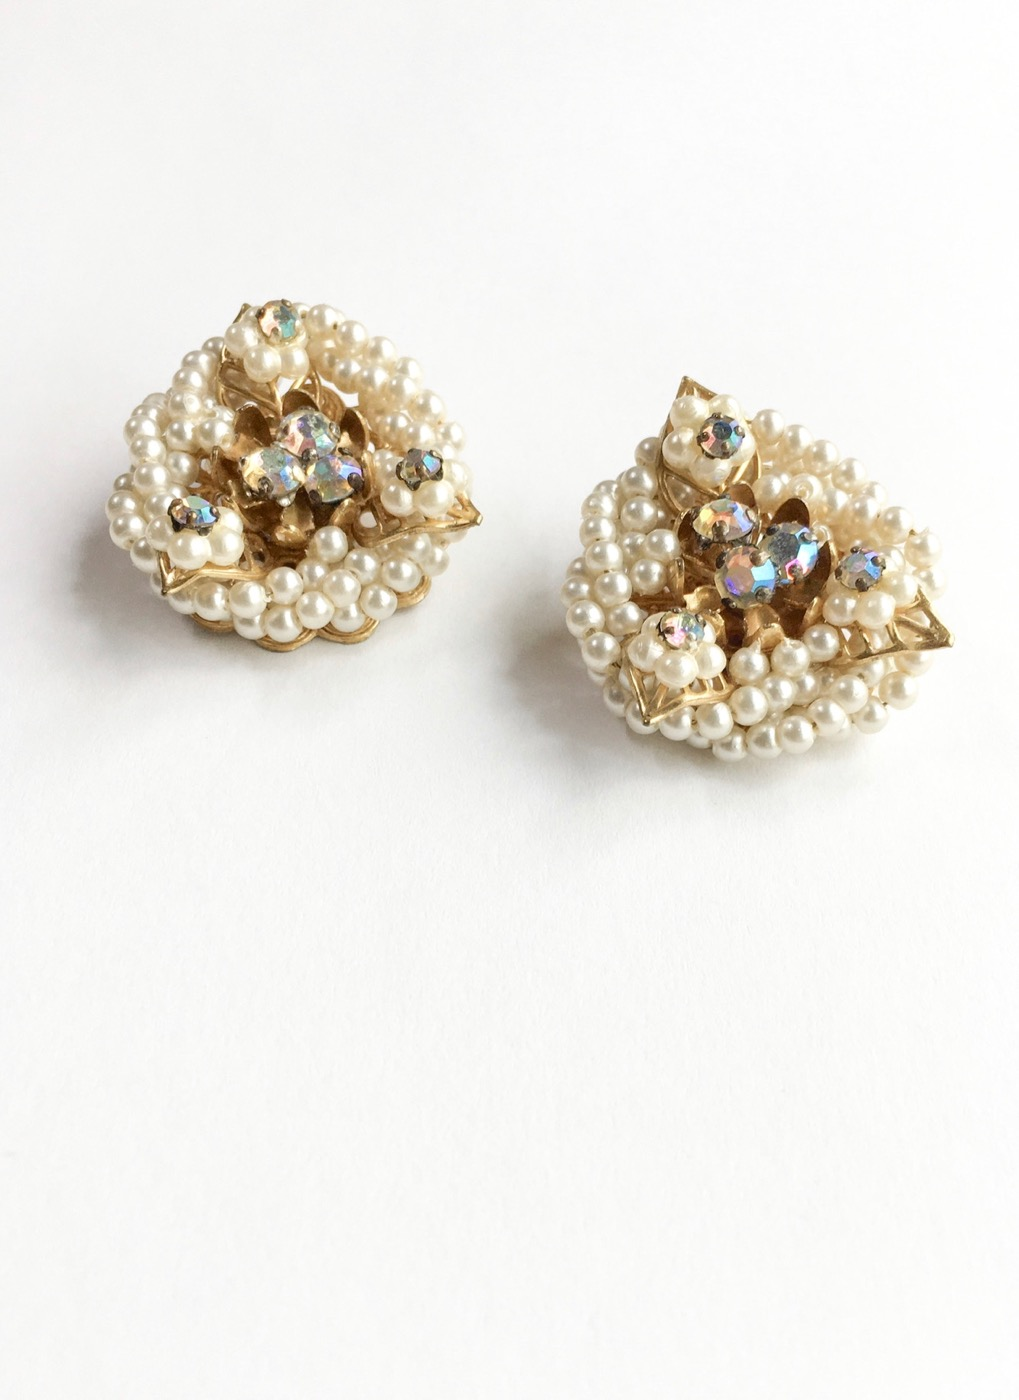 1950s-wrapped-rhinestones-pearls-clip-earrings